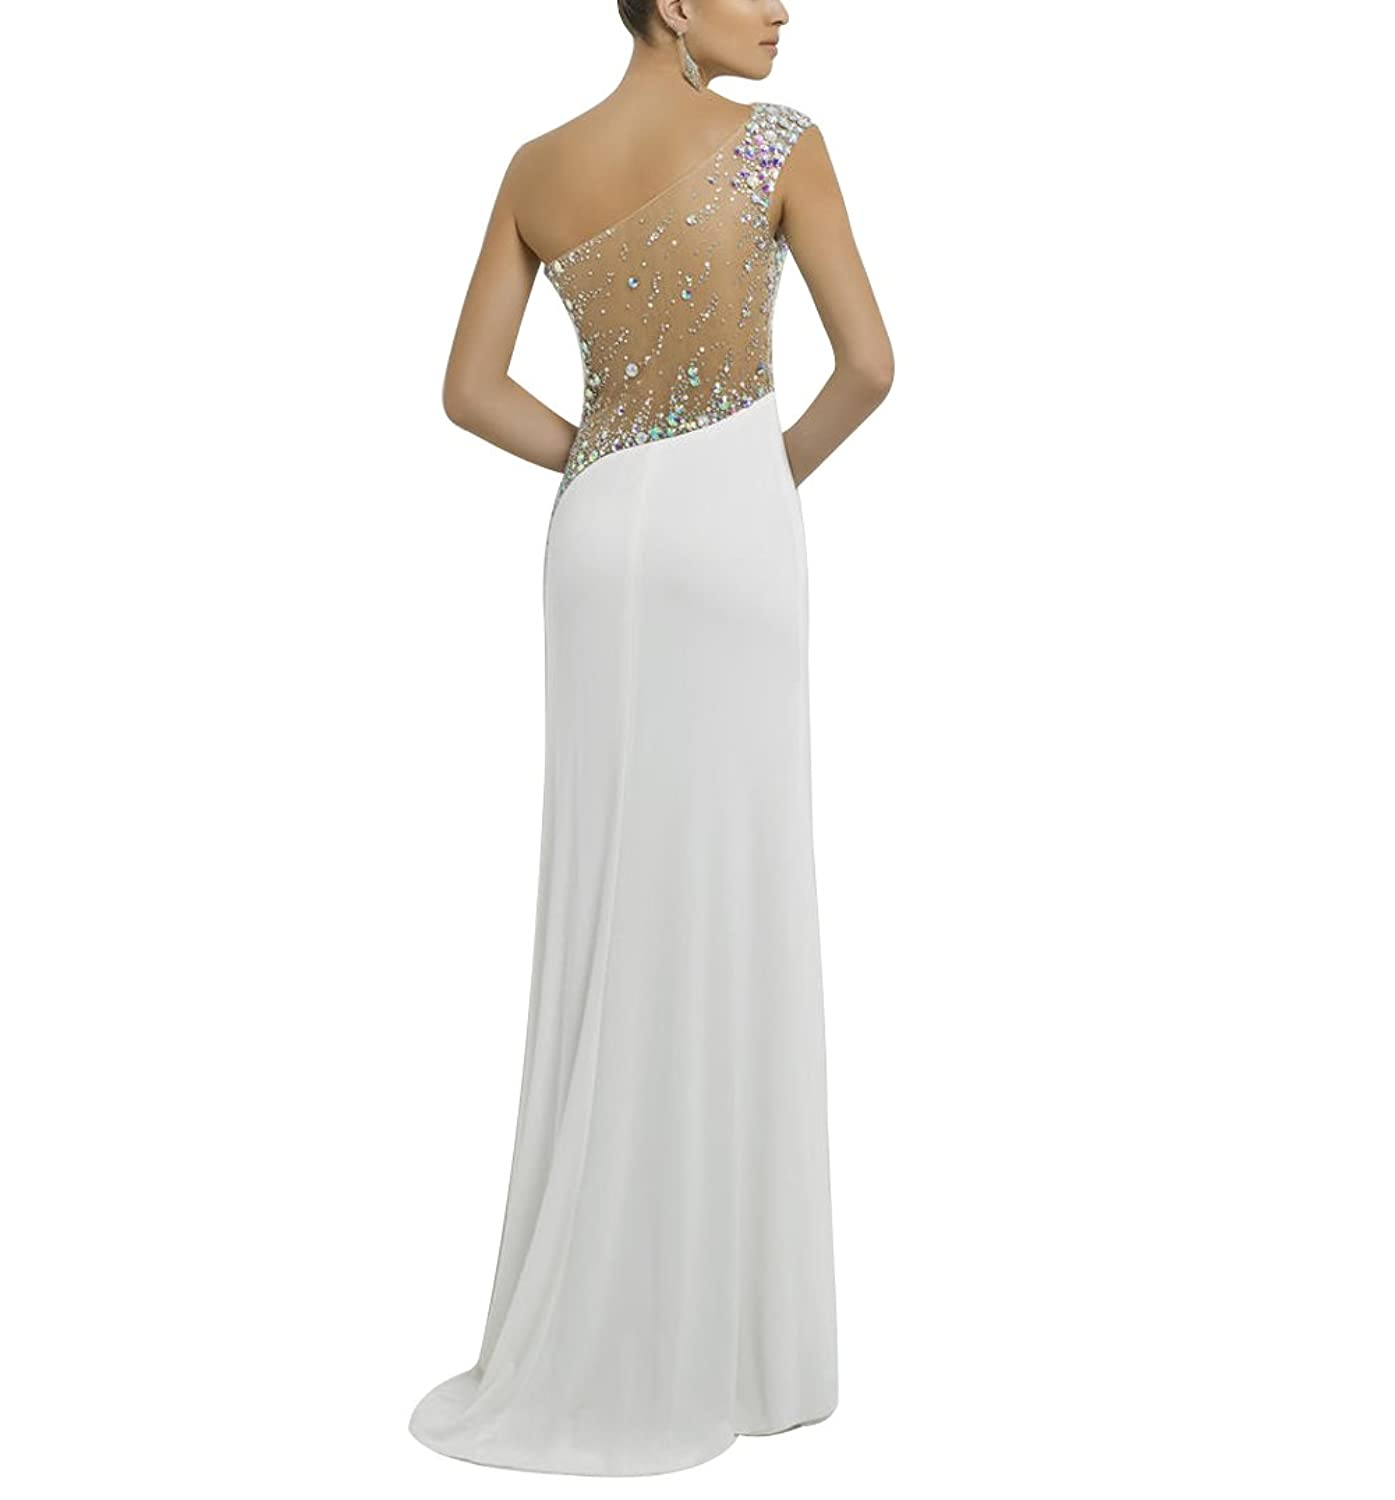 Amazon.com: ShangYou Sexy Beaded Prom dress One Shoulder Split Aside Party Gown Dress: Clothing